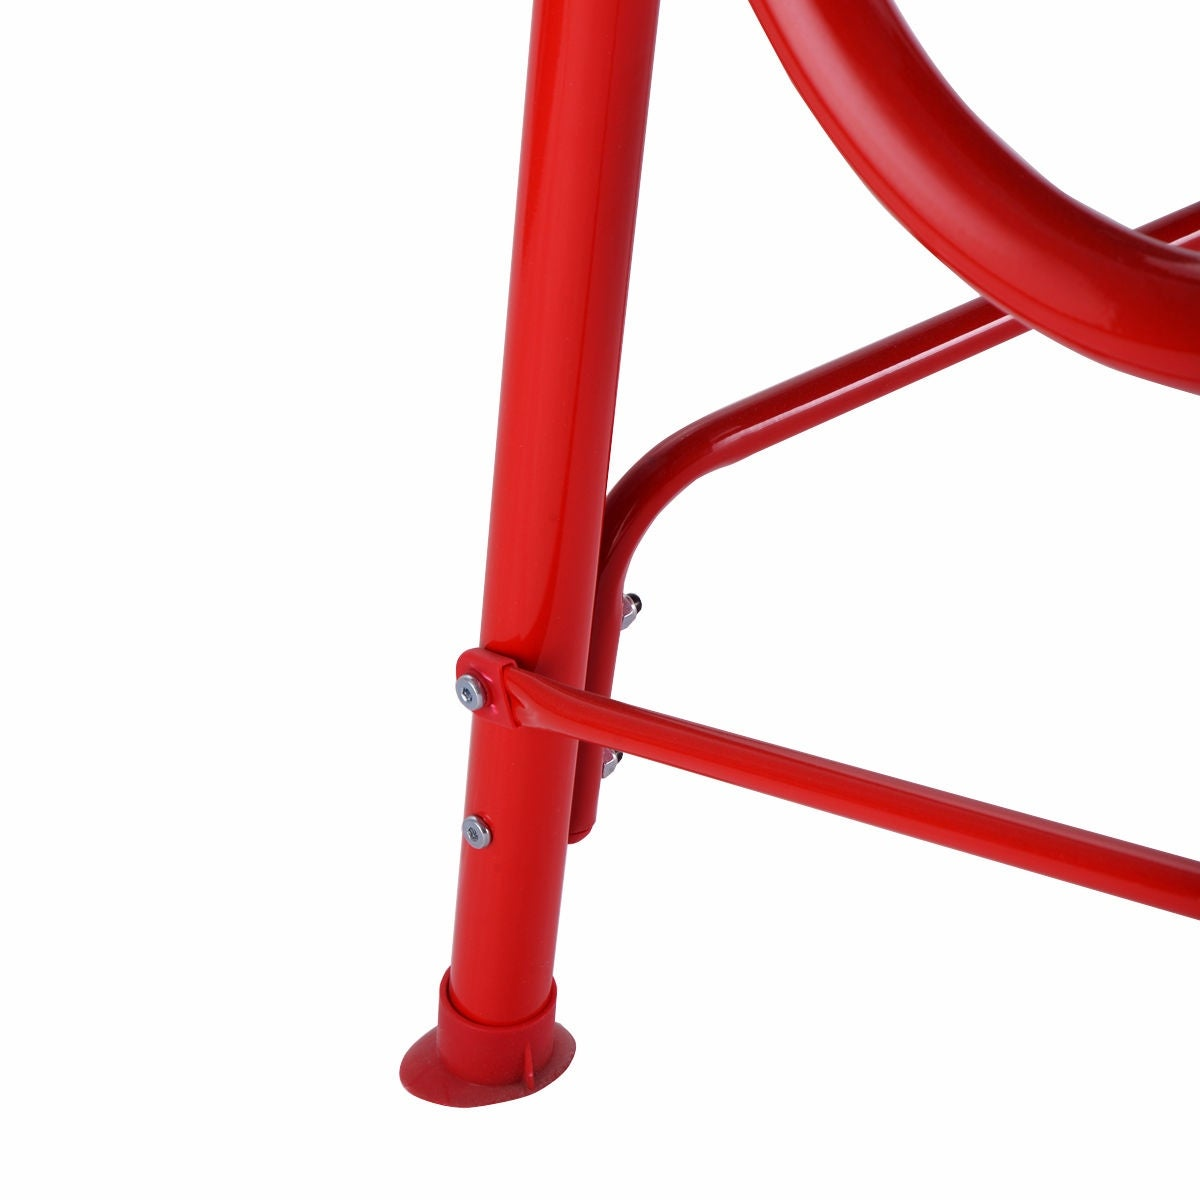 Costway Kids Patio Swing Chair Children Porch Bench Canopy 2 Person Yard Furniture red - Free Shipping Today - Overstock.com - 23046320  sc 1 st  Overstock & Costway Kids Patio Swing Chair Children Porch Bench Canopy 2 ...